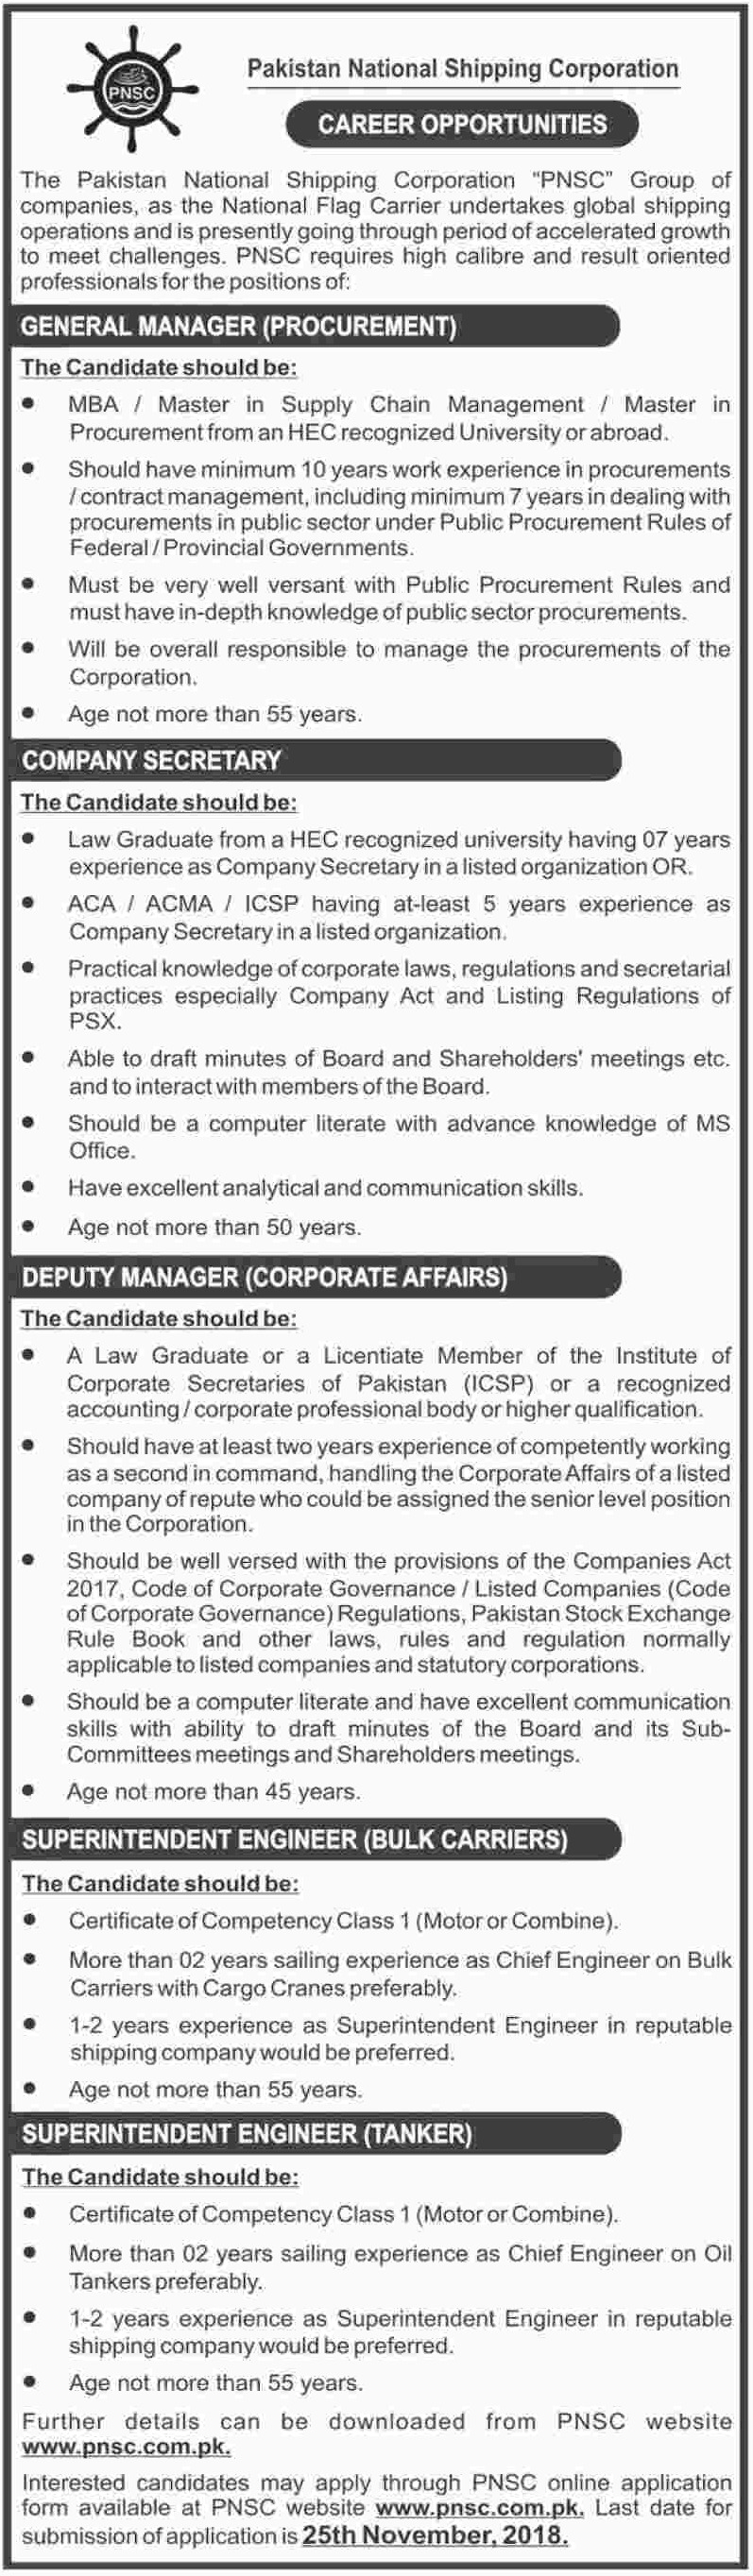 Pakistan National Shipping Corporation Jobs 2018